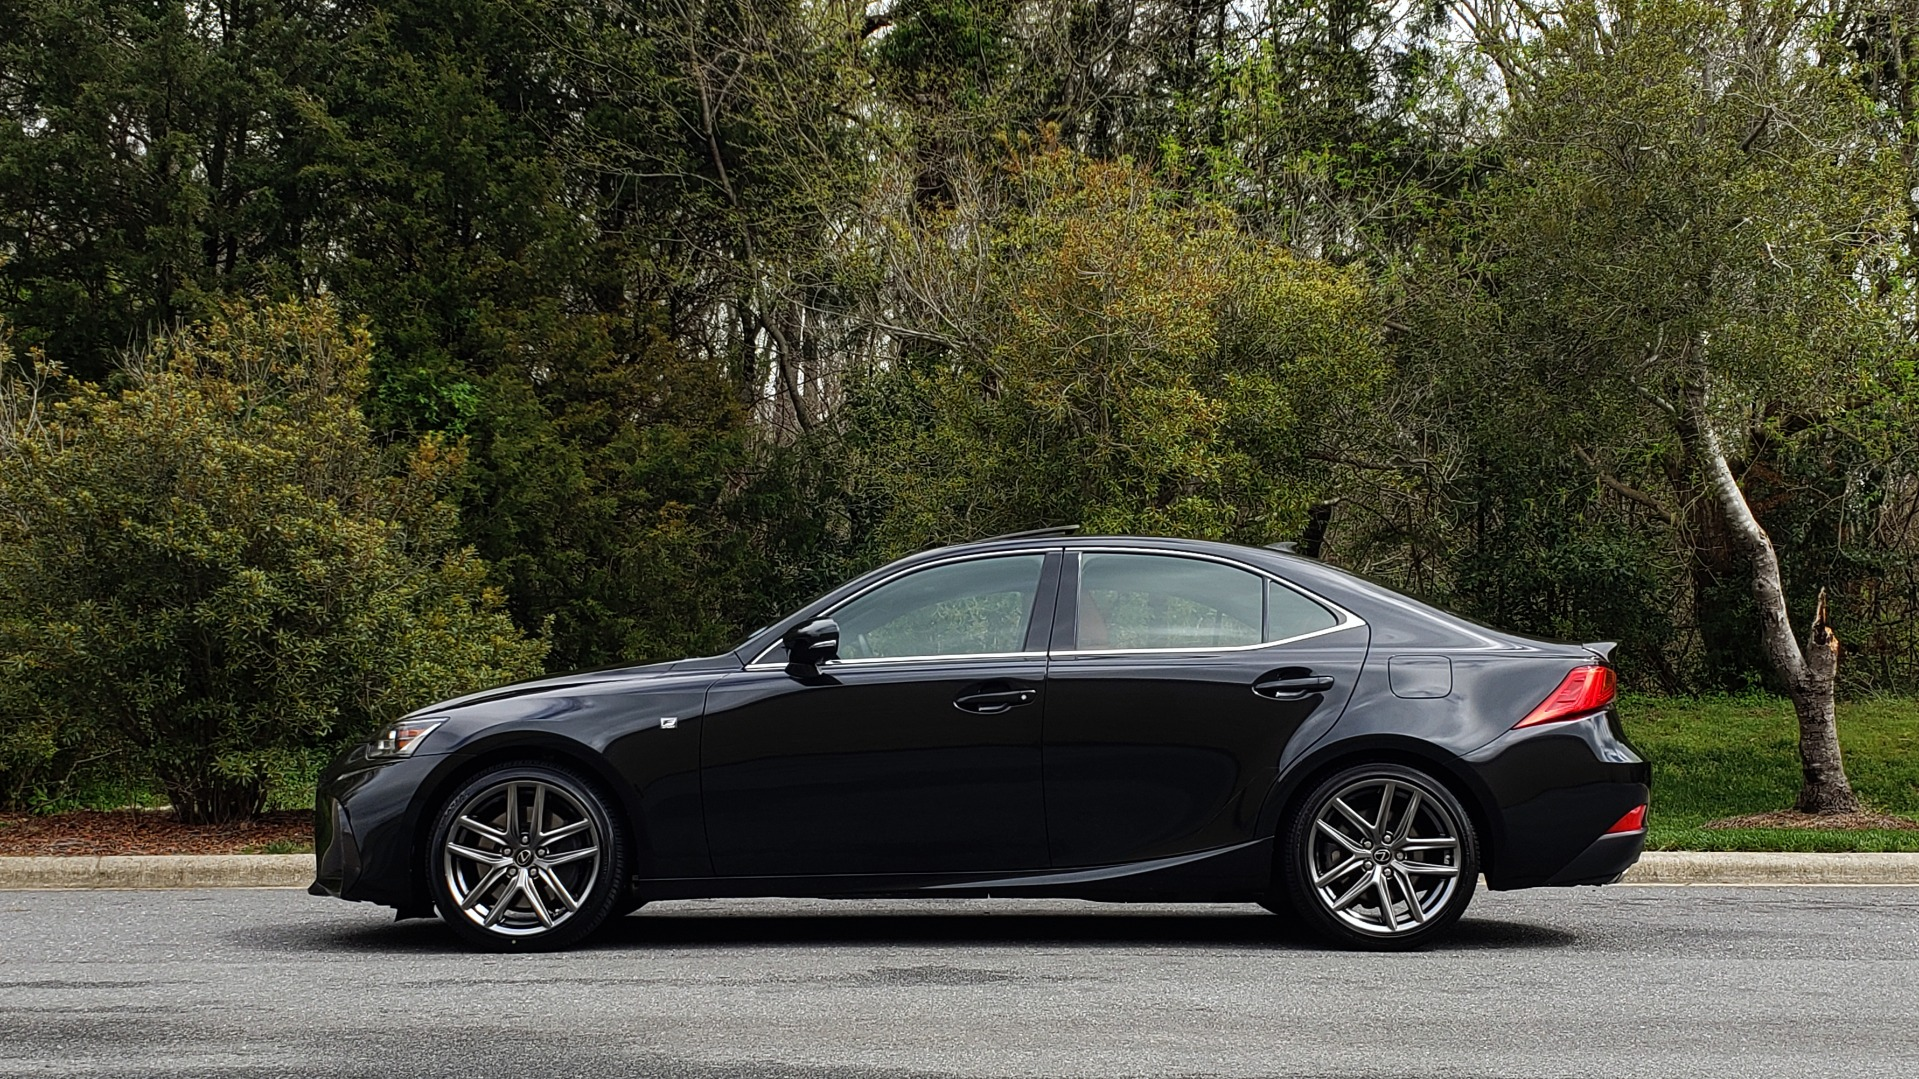 Used 2017 Lexus IS 300 F SPORT AWD / NAV / SUNROOF / REARVIEW / VENT SEATS / BSM for sale Sold at Formula Imports in Charlotte NC 28227 2